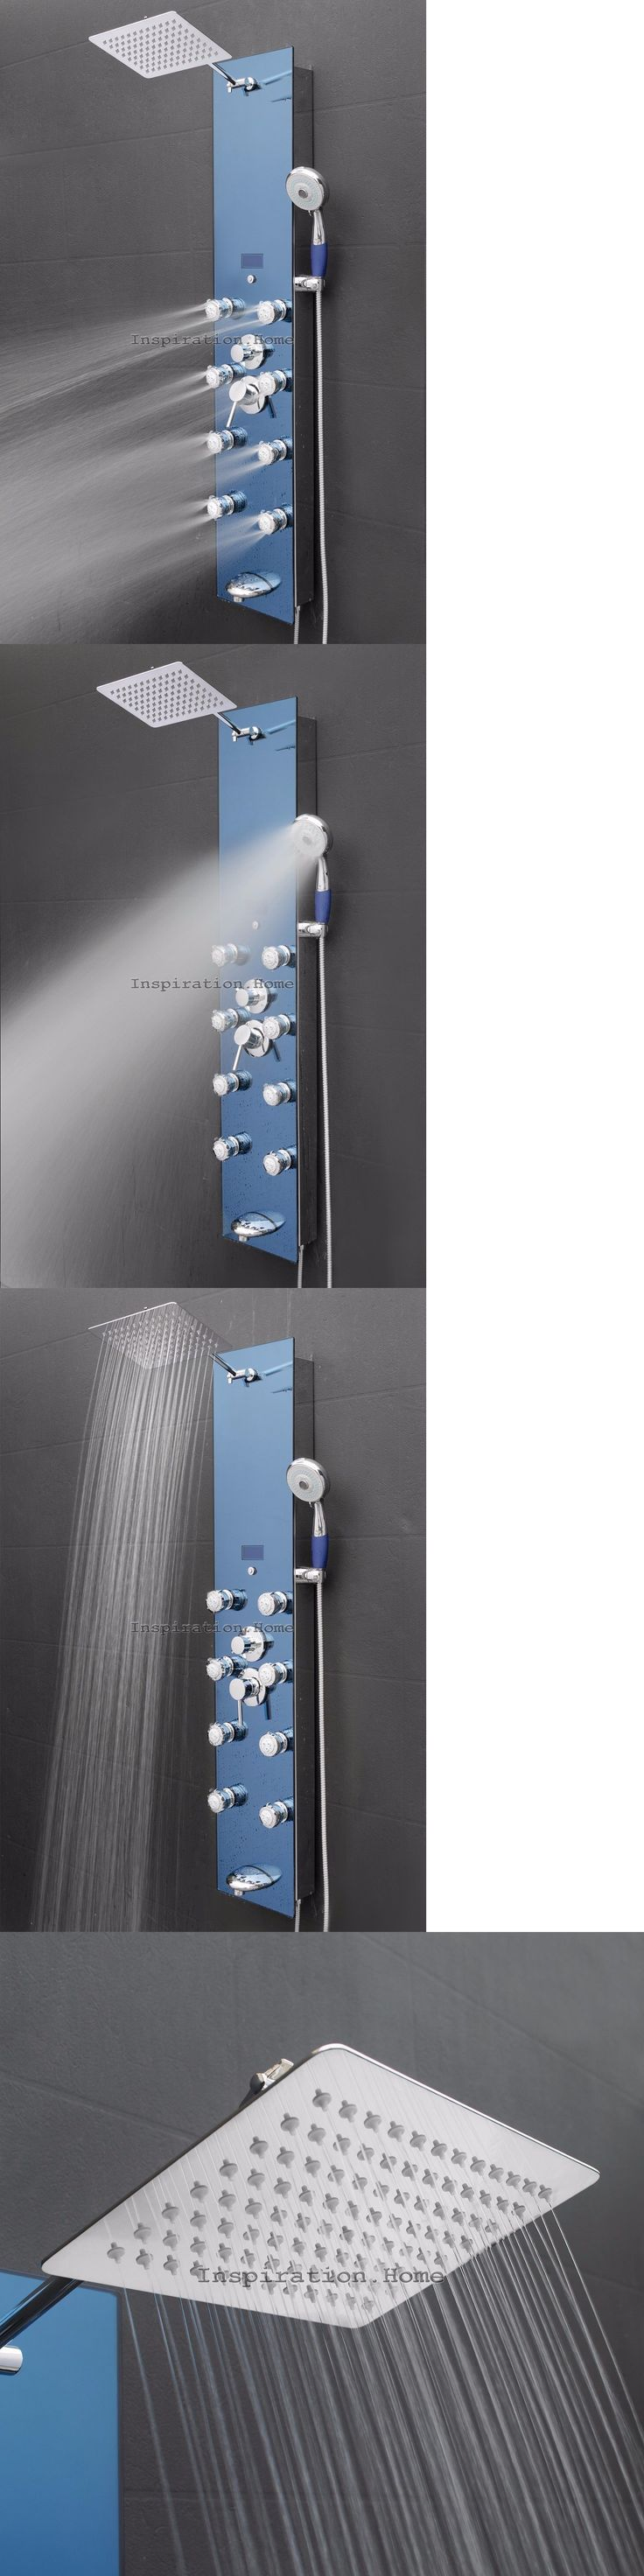 Shower Panels and Massagers 121849: Tempered Glass Shower Tower Head And Massage Functional Jets Panel Tub Spout -> BUY IT NOW ONLY: $189.99 on eBay!